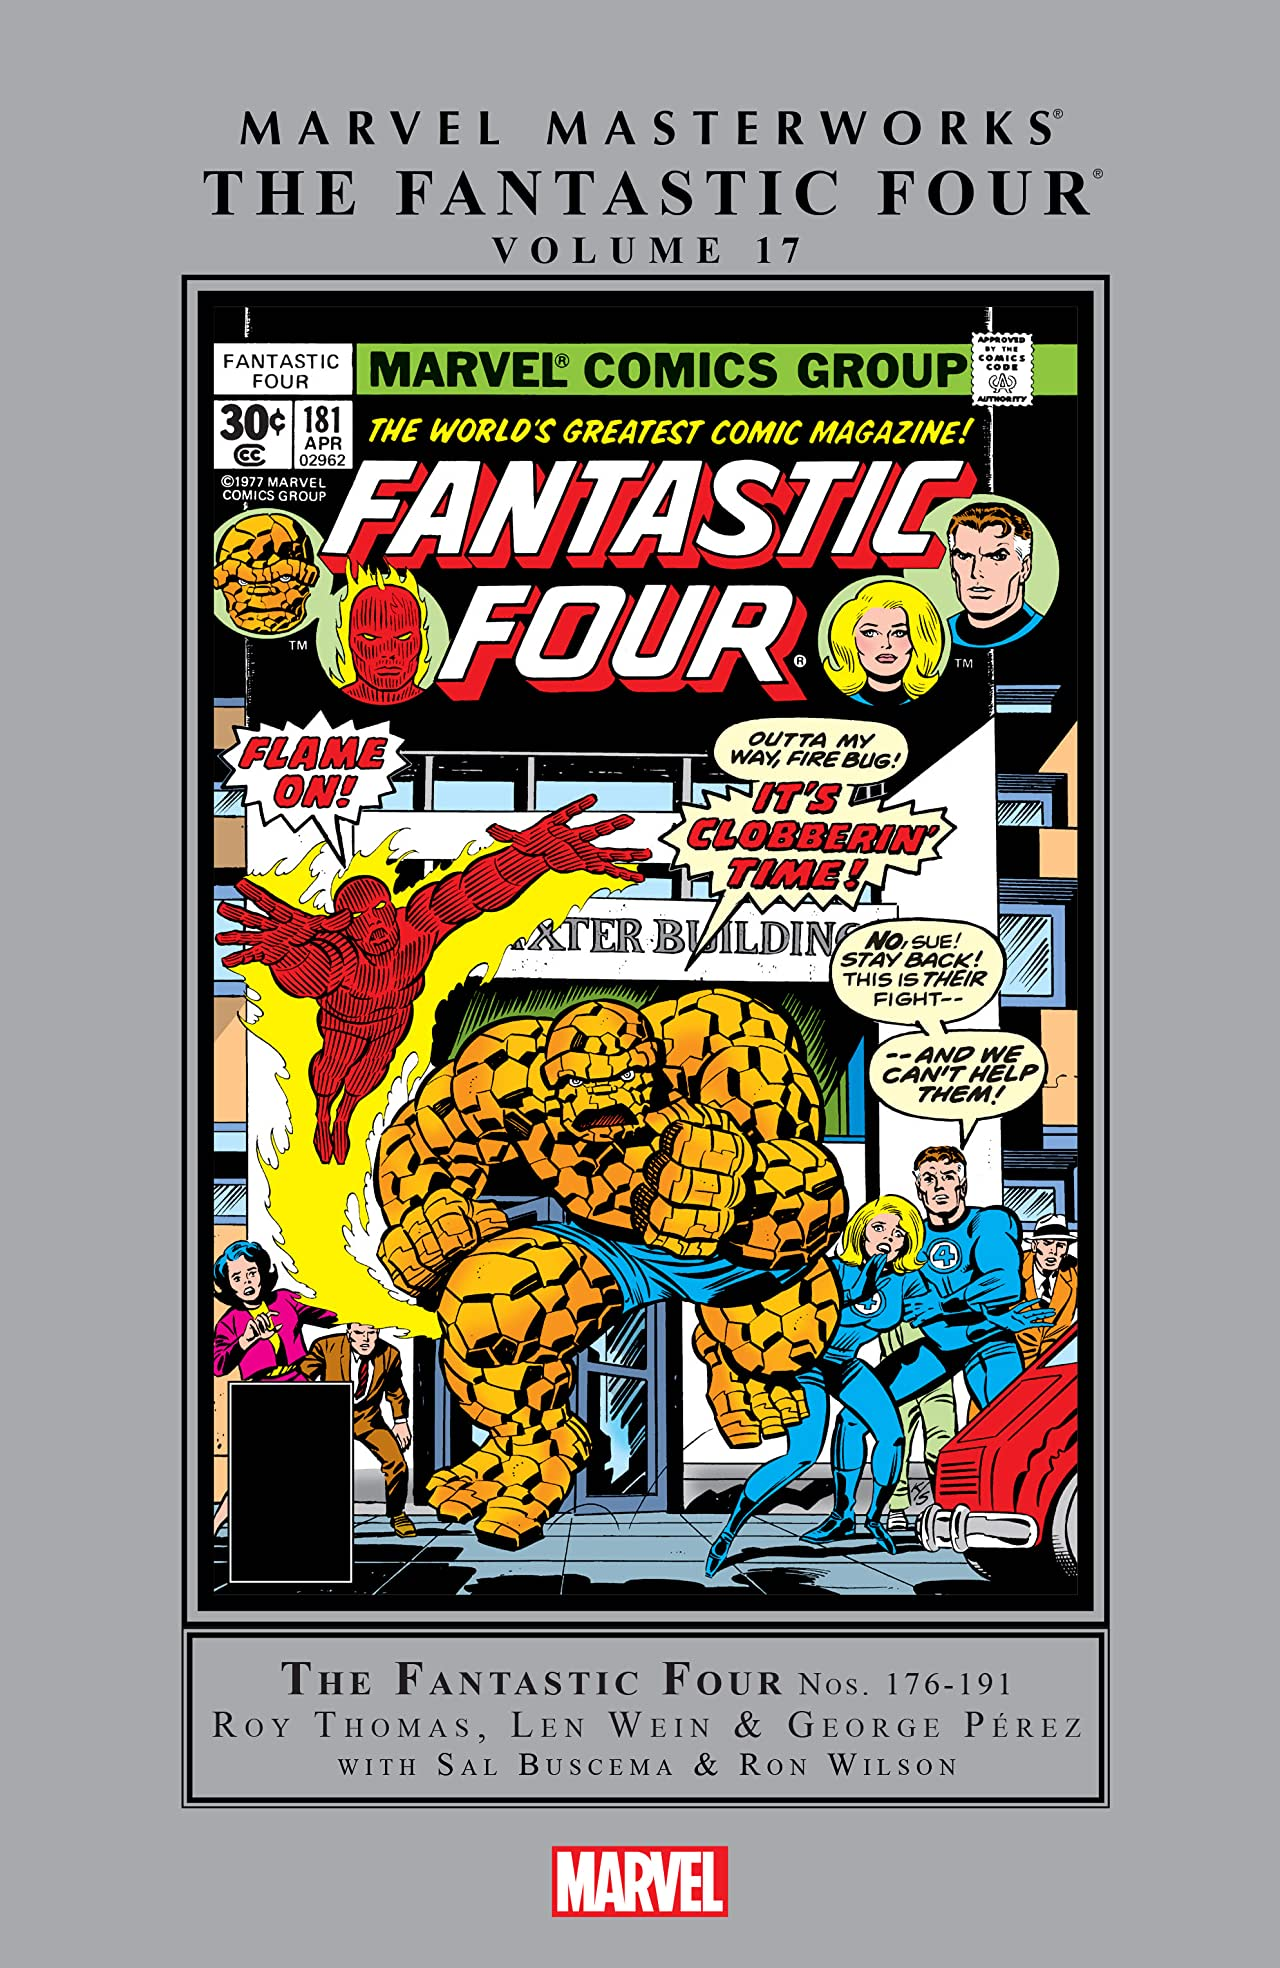 Fantastic Four Masterworks Vol. 17